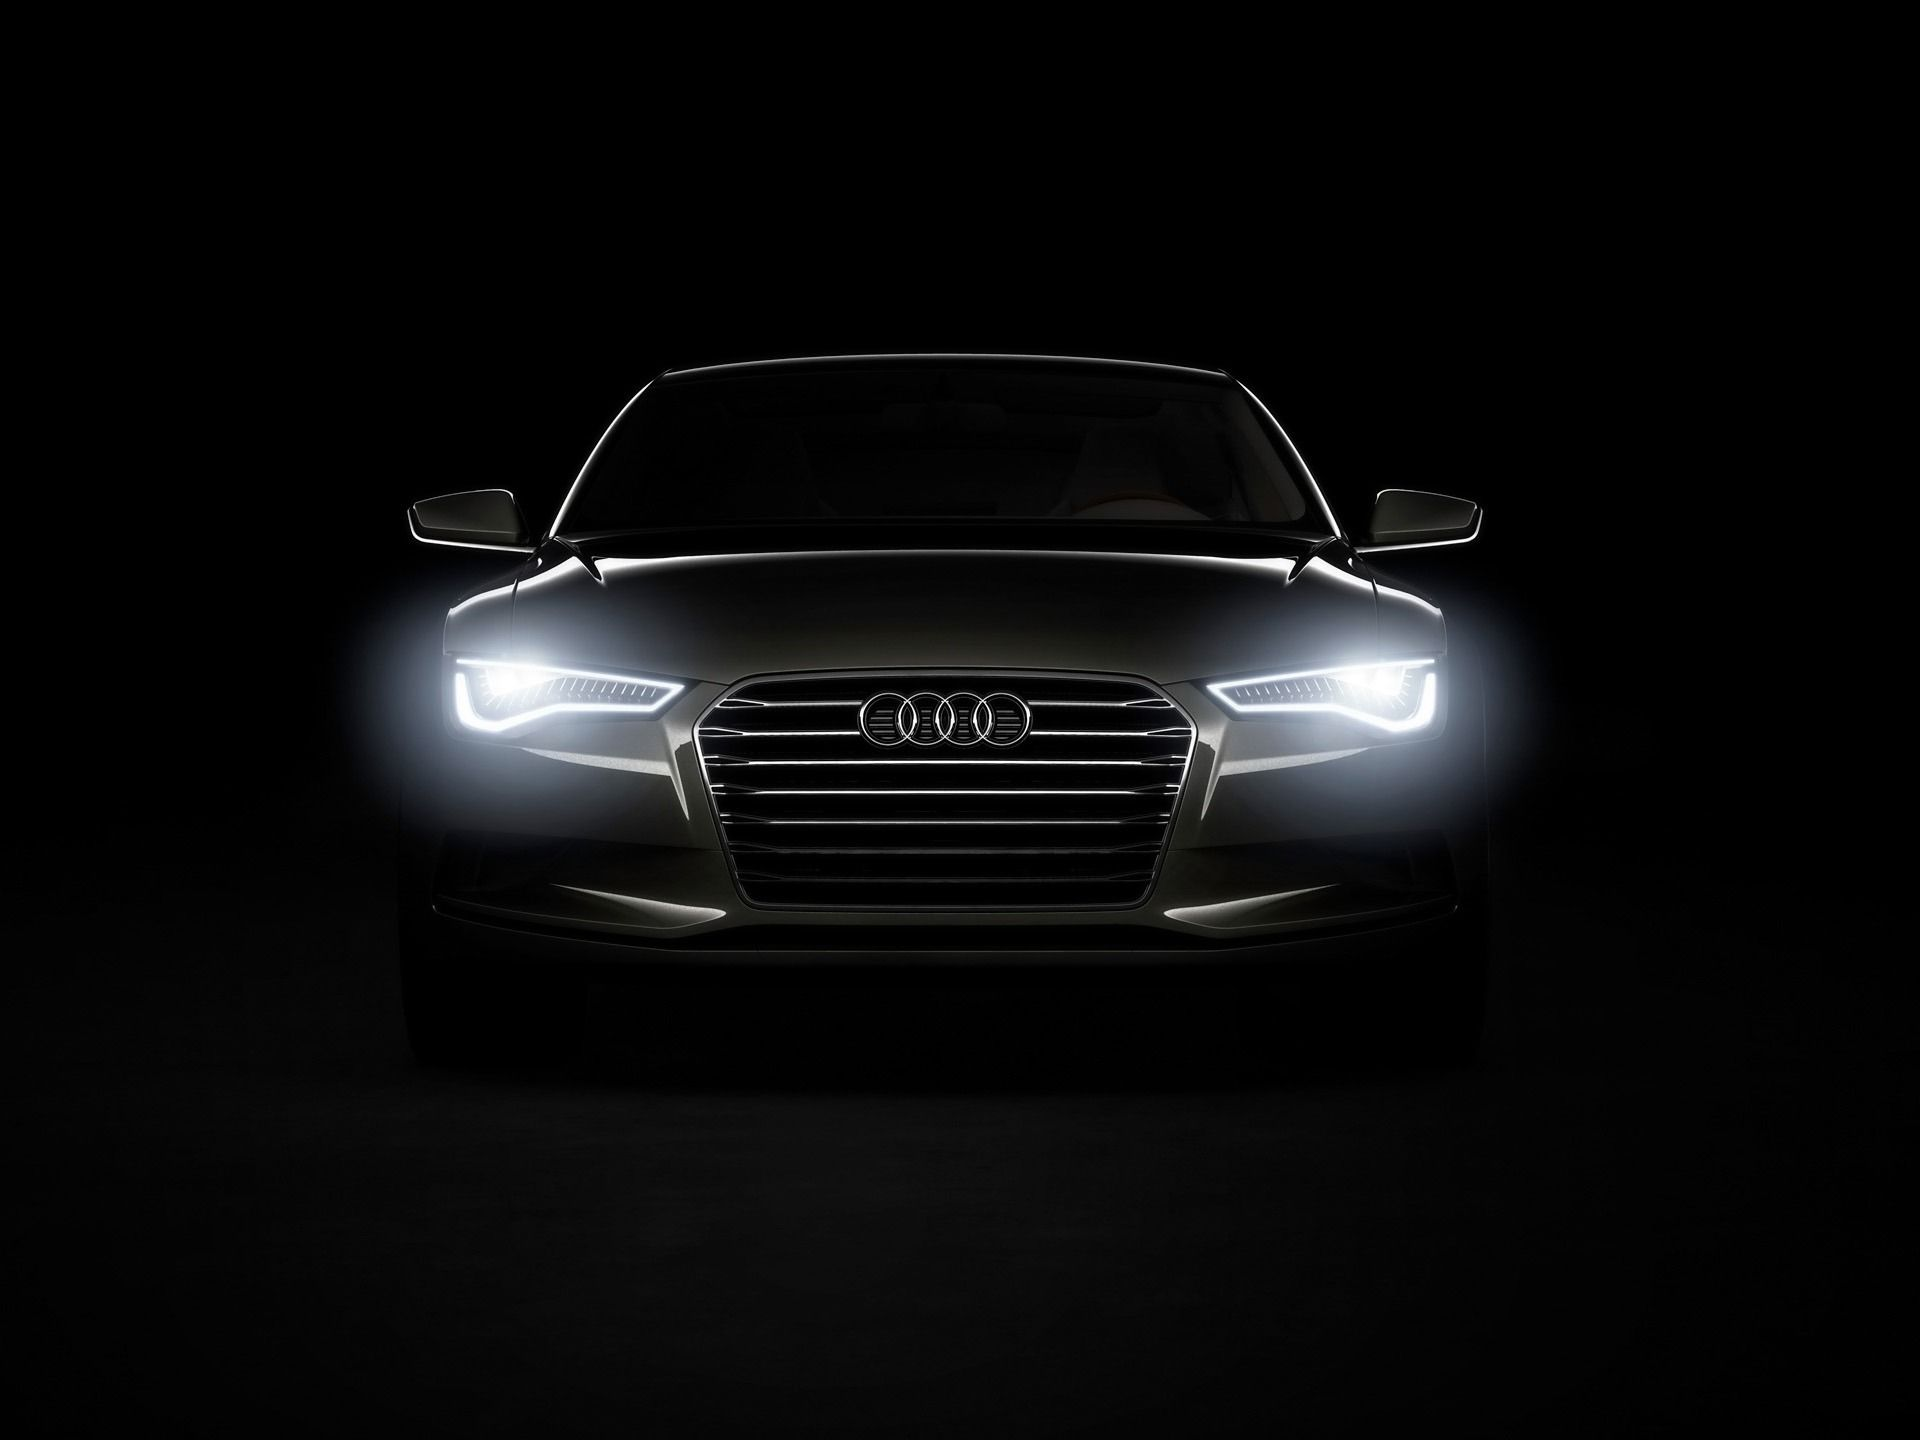 Audi A Concept Wallpaper Audi Cars Wallpapers In Jpg Format For - Audi car background